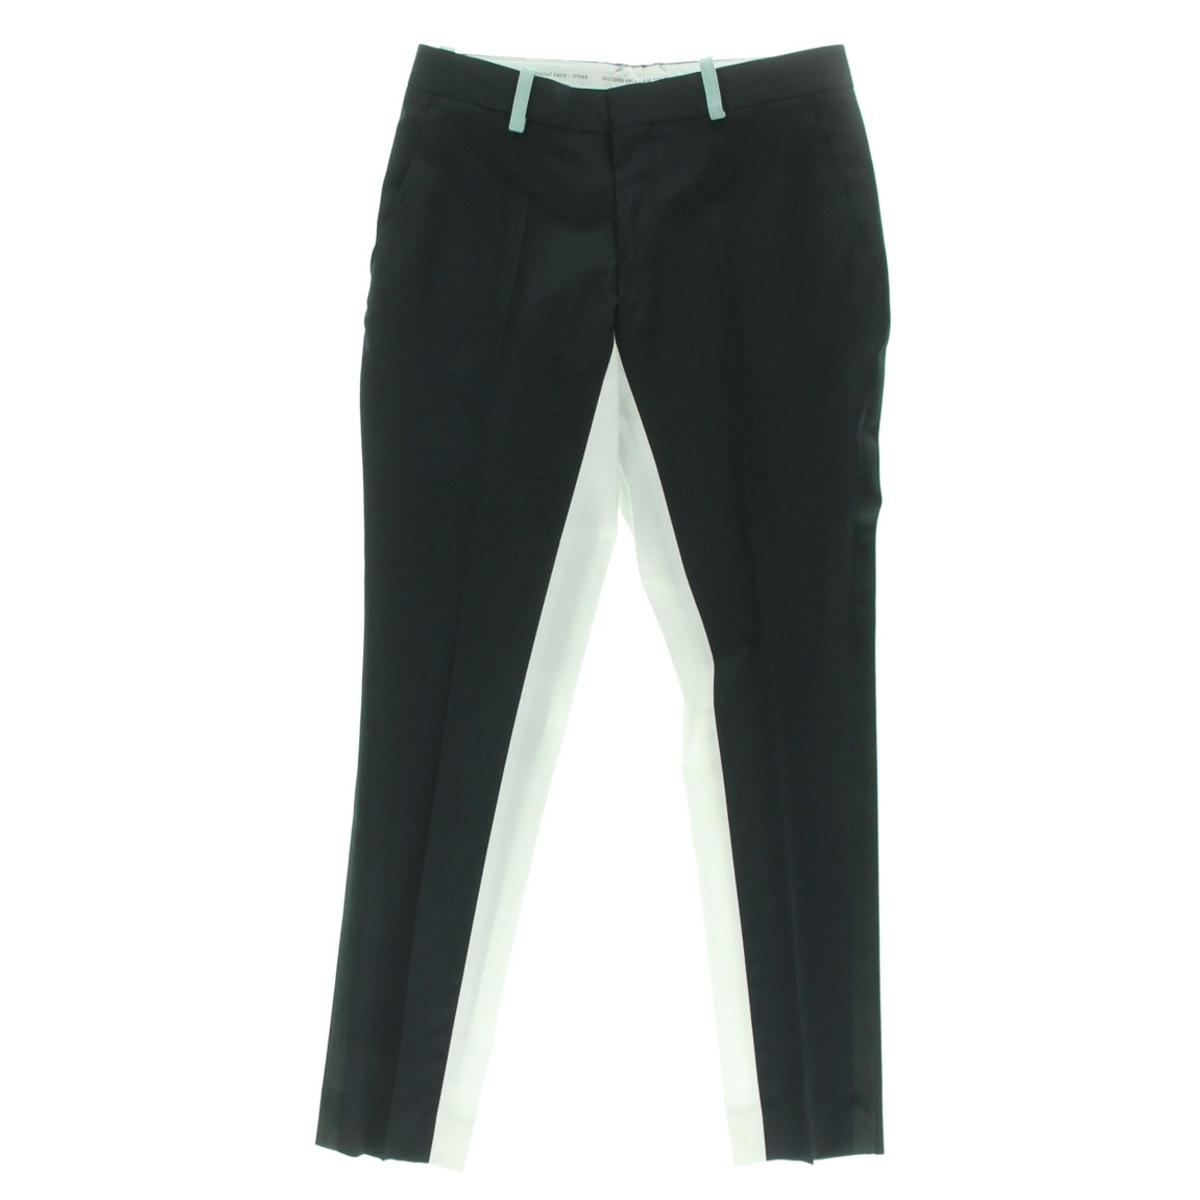 Each x Other Womens Wool Contrast Trim Tuxedo Pant by Womens Wool Coats